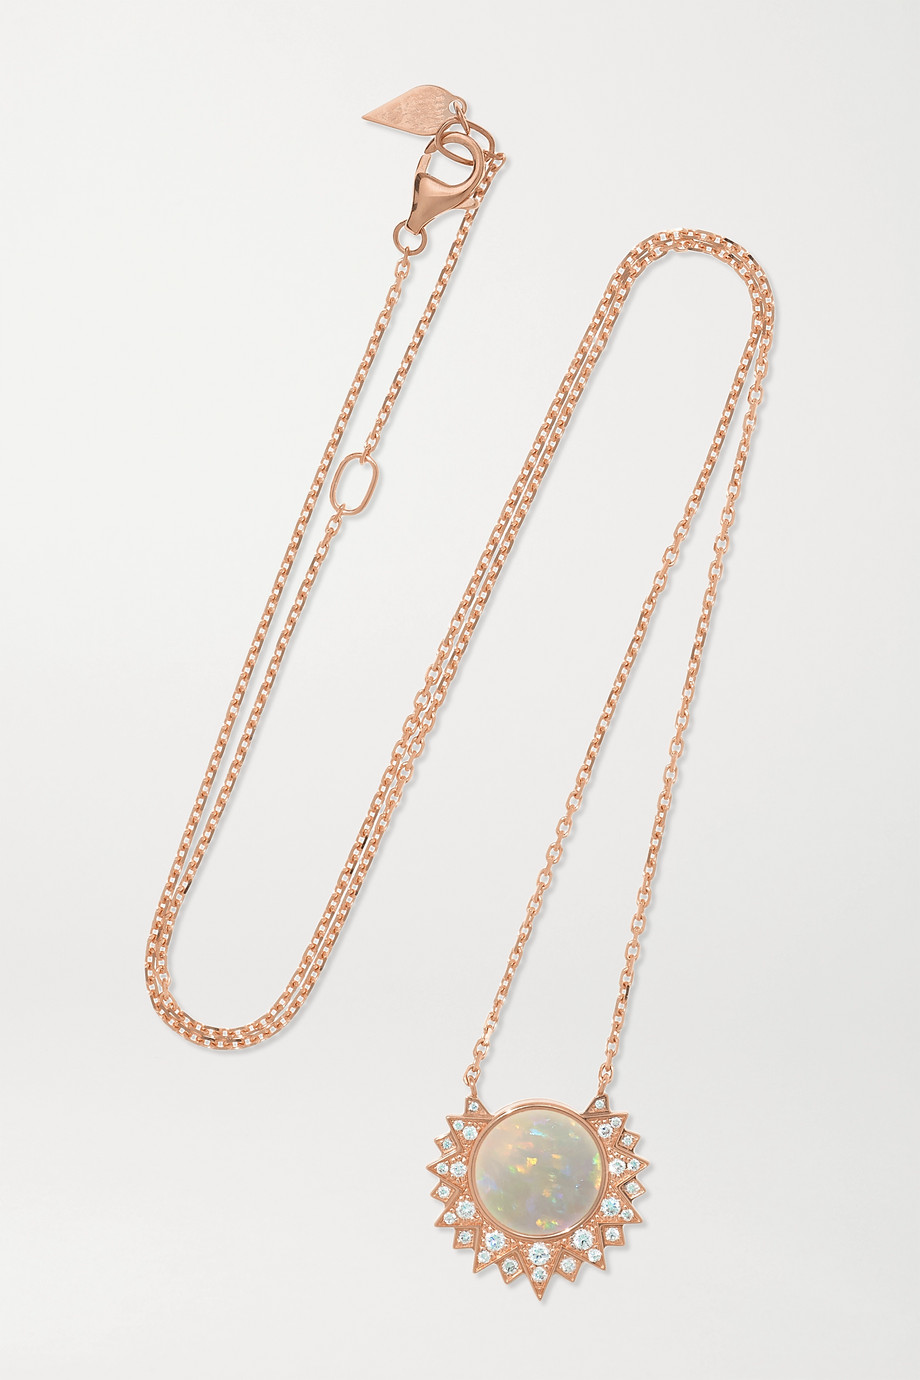 PIAGET Sunlight 18-karat rose gold, opal and diamond necklace